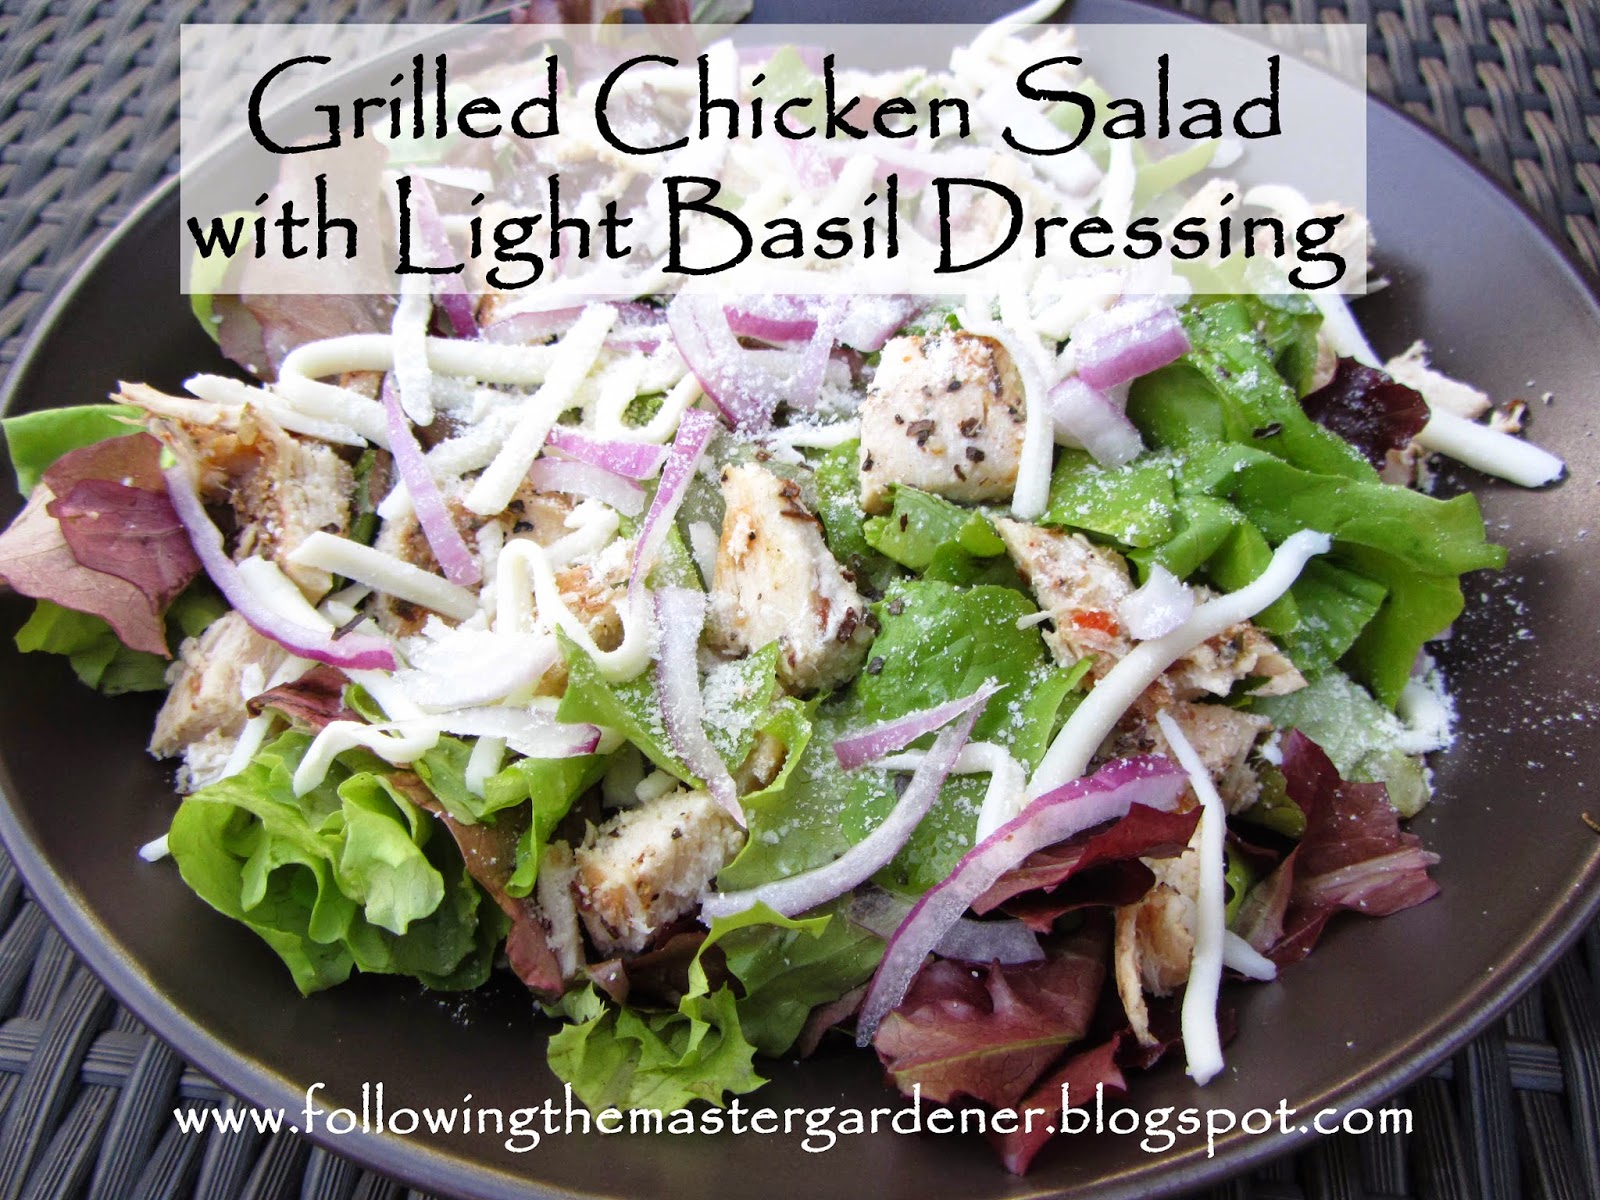 ... the Master Gardener: Grilled Chicken Salad with Light Basil Dressing